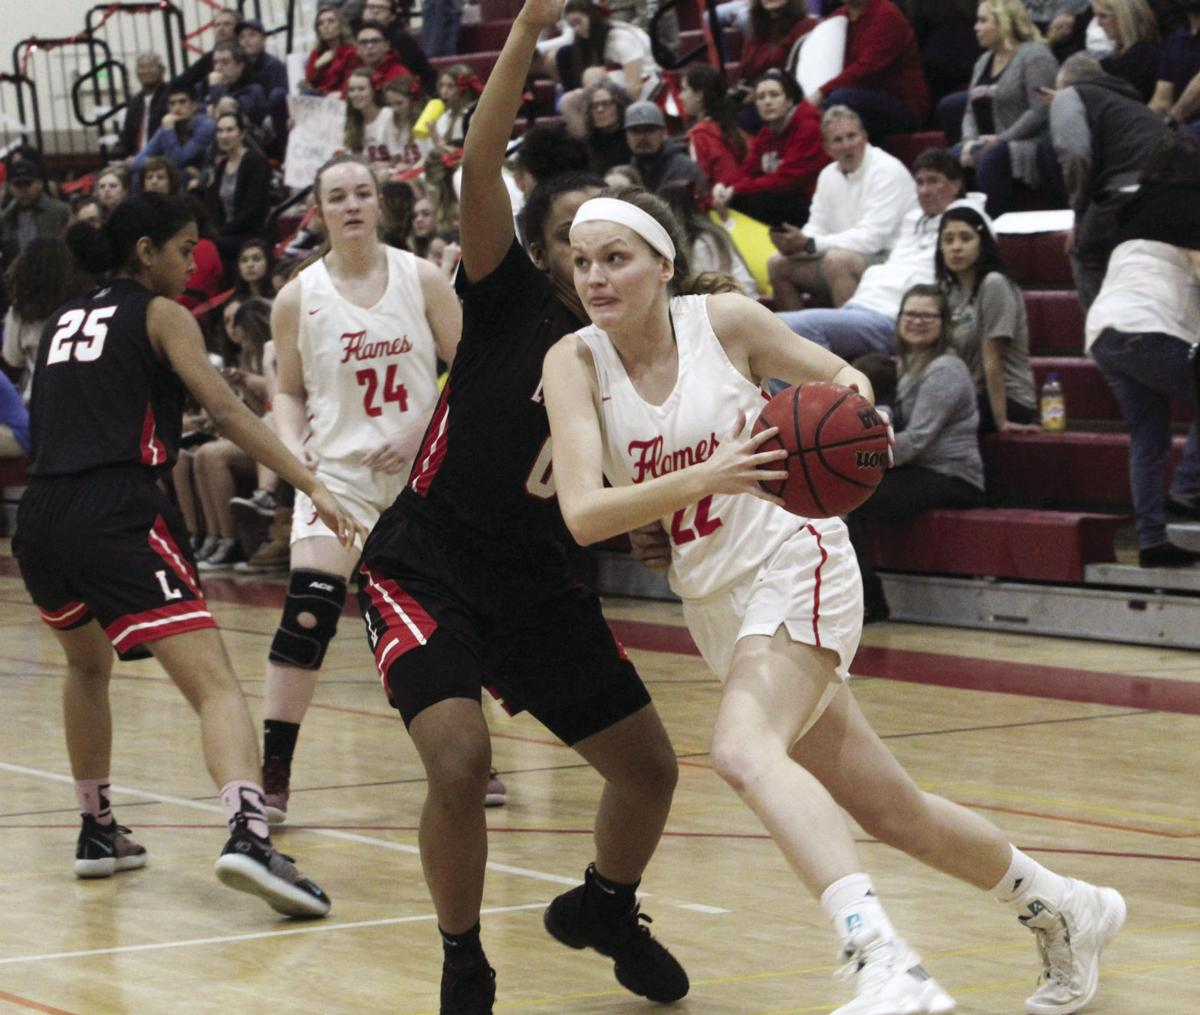 Girls basketball: Flames' playoff hopes cooled